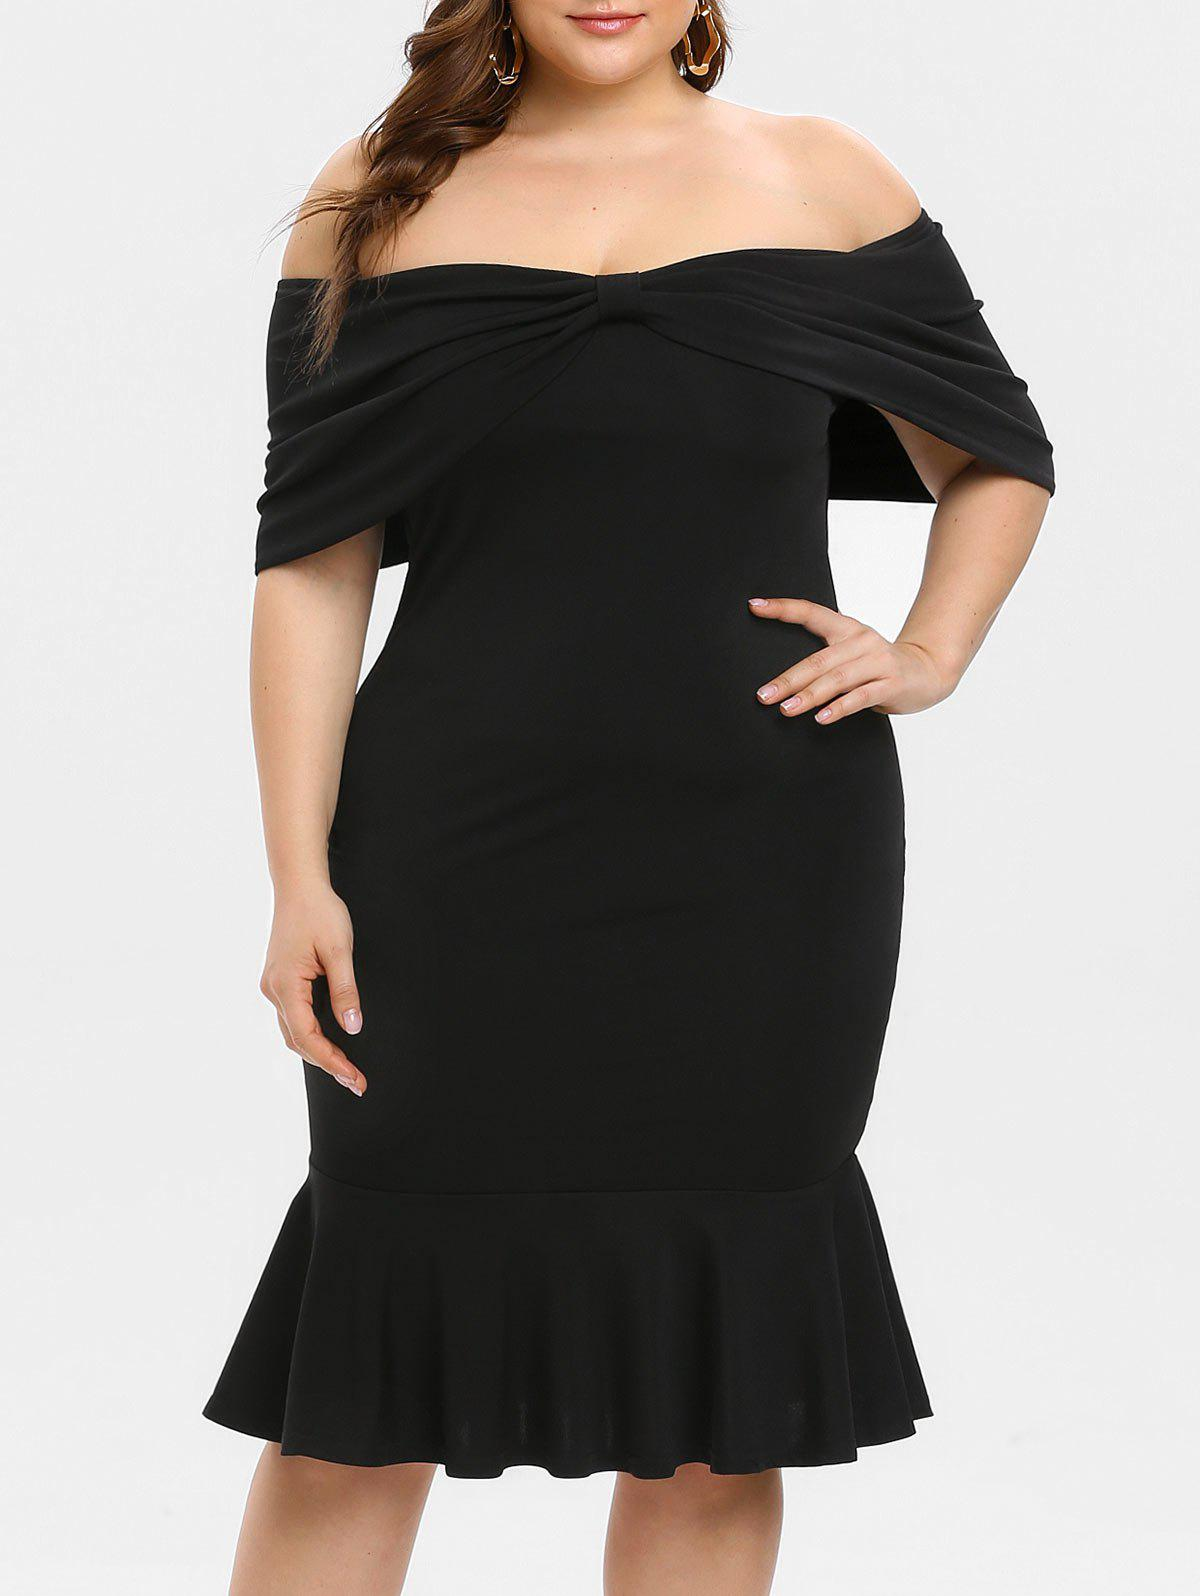 Plus Size Off Shoulder Bodycon Dress Mermaid